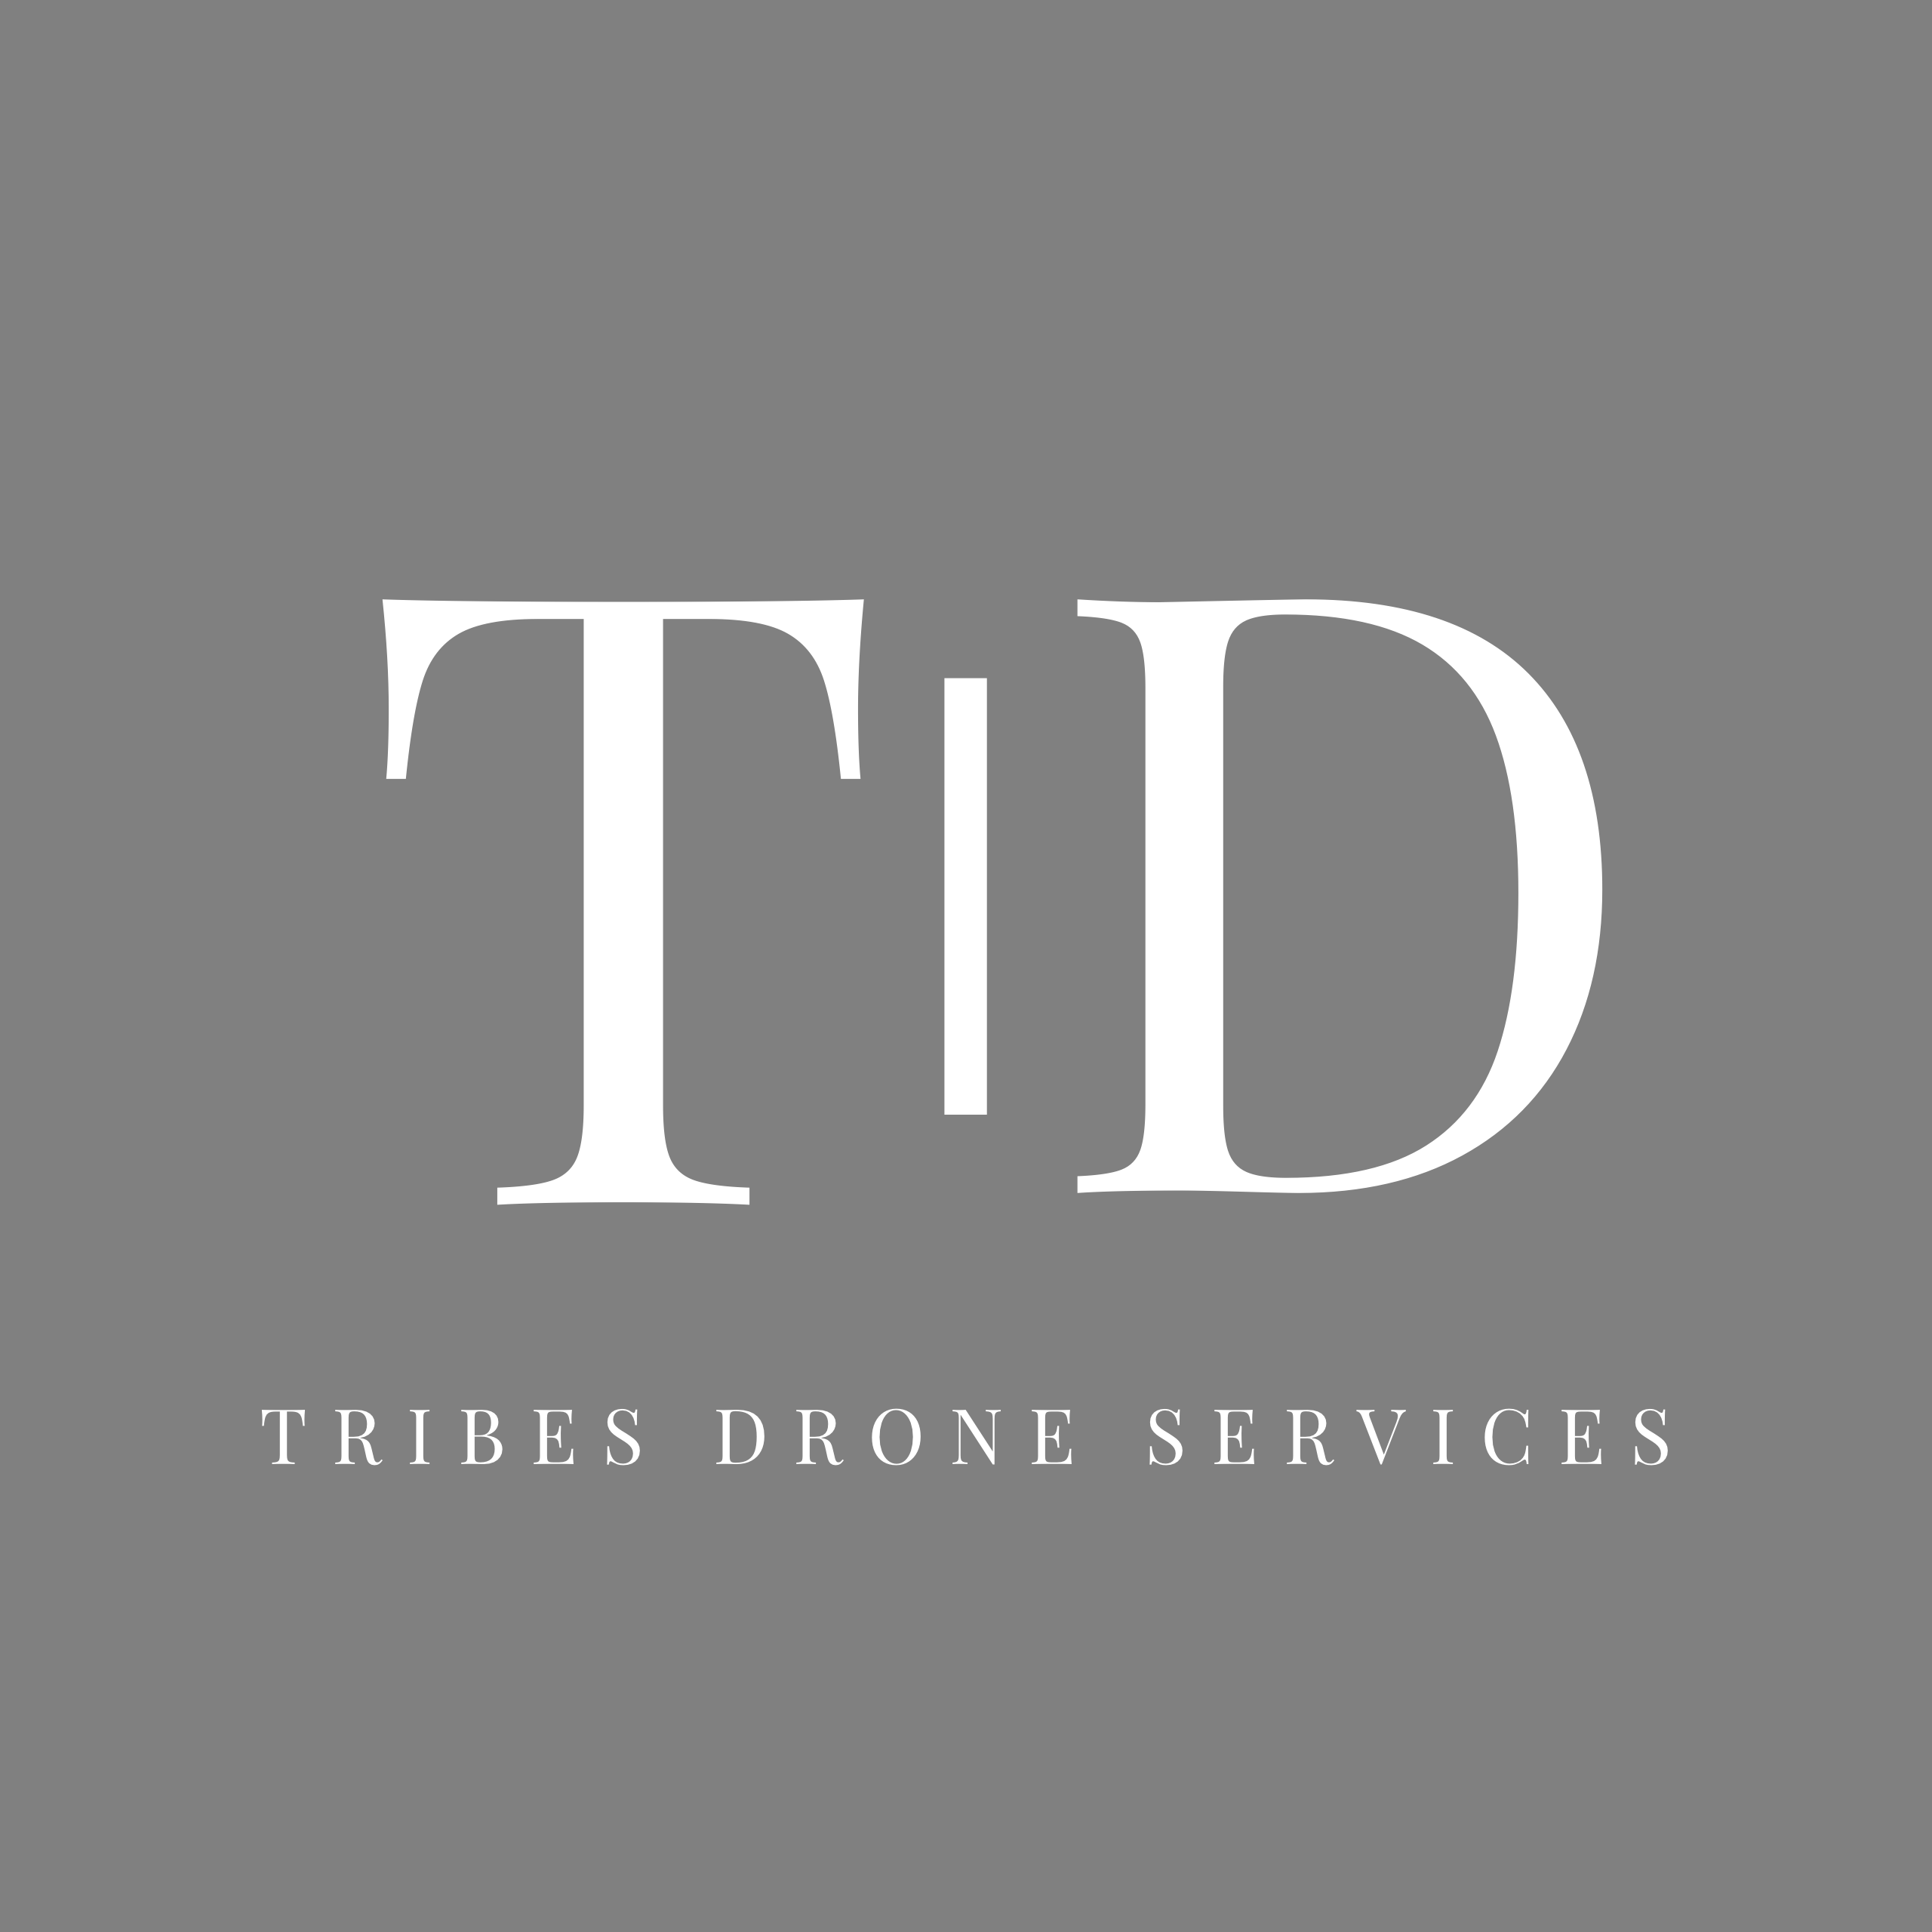 Tribes Drone Services